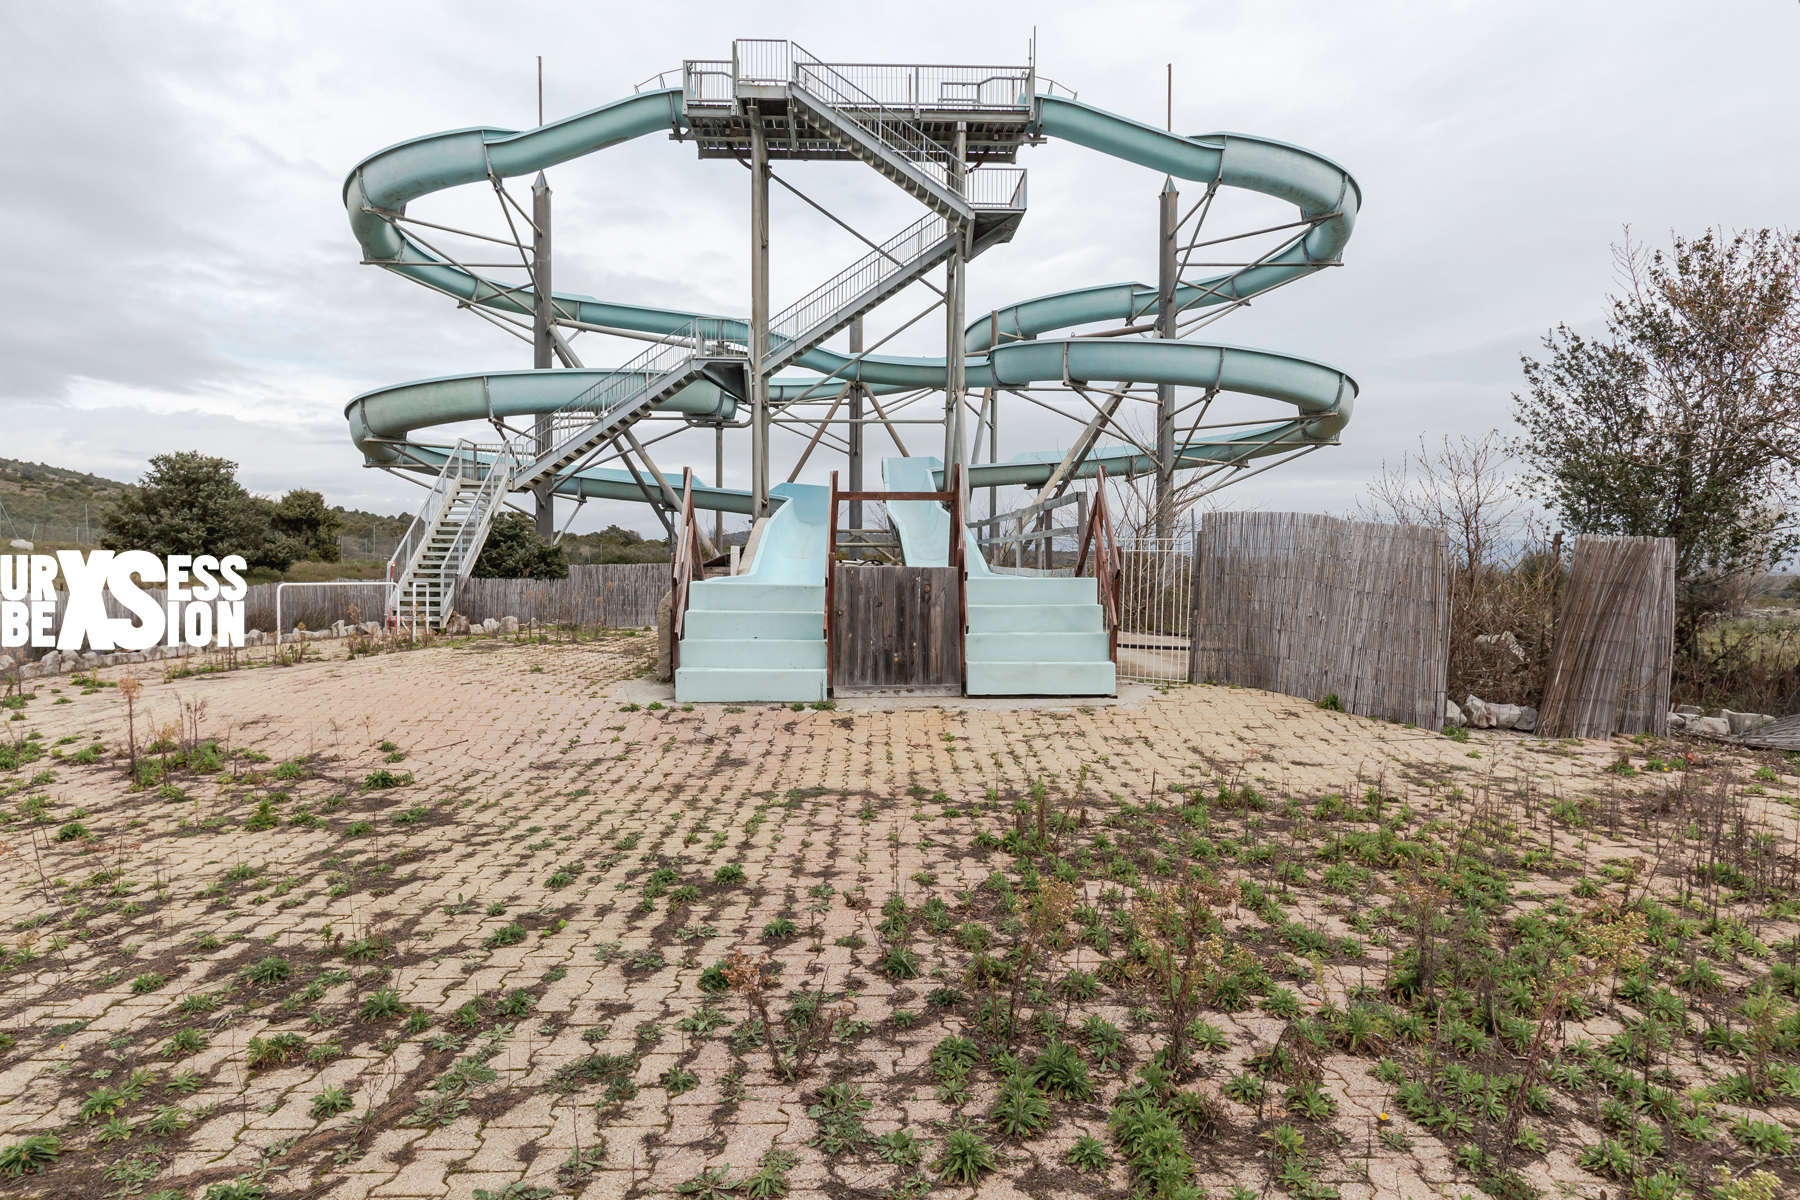 Abandoned amusement park in France | urbexsession.com/en/gacy-land-amusement-park | Urbex France